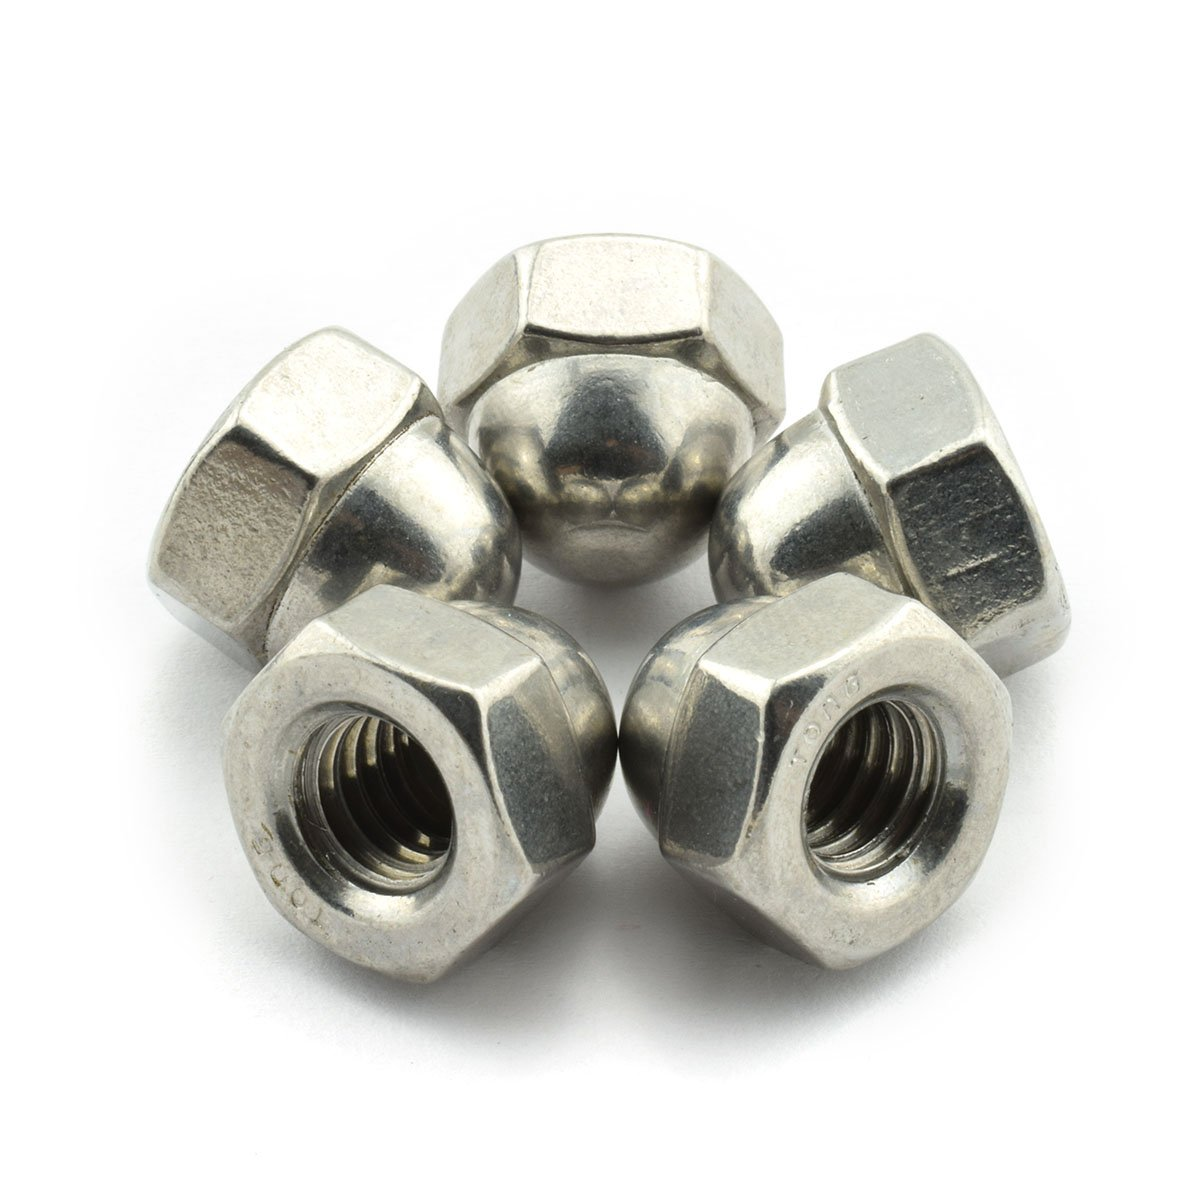 30pcs 5/16-18 Hex Acorn Nuts 304 Stainless Steel Hexagon Decorative Cap Nut Acorn Dome Head Nuts for Screws Bolts